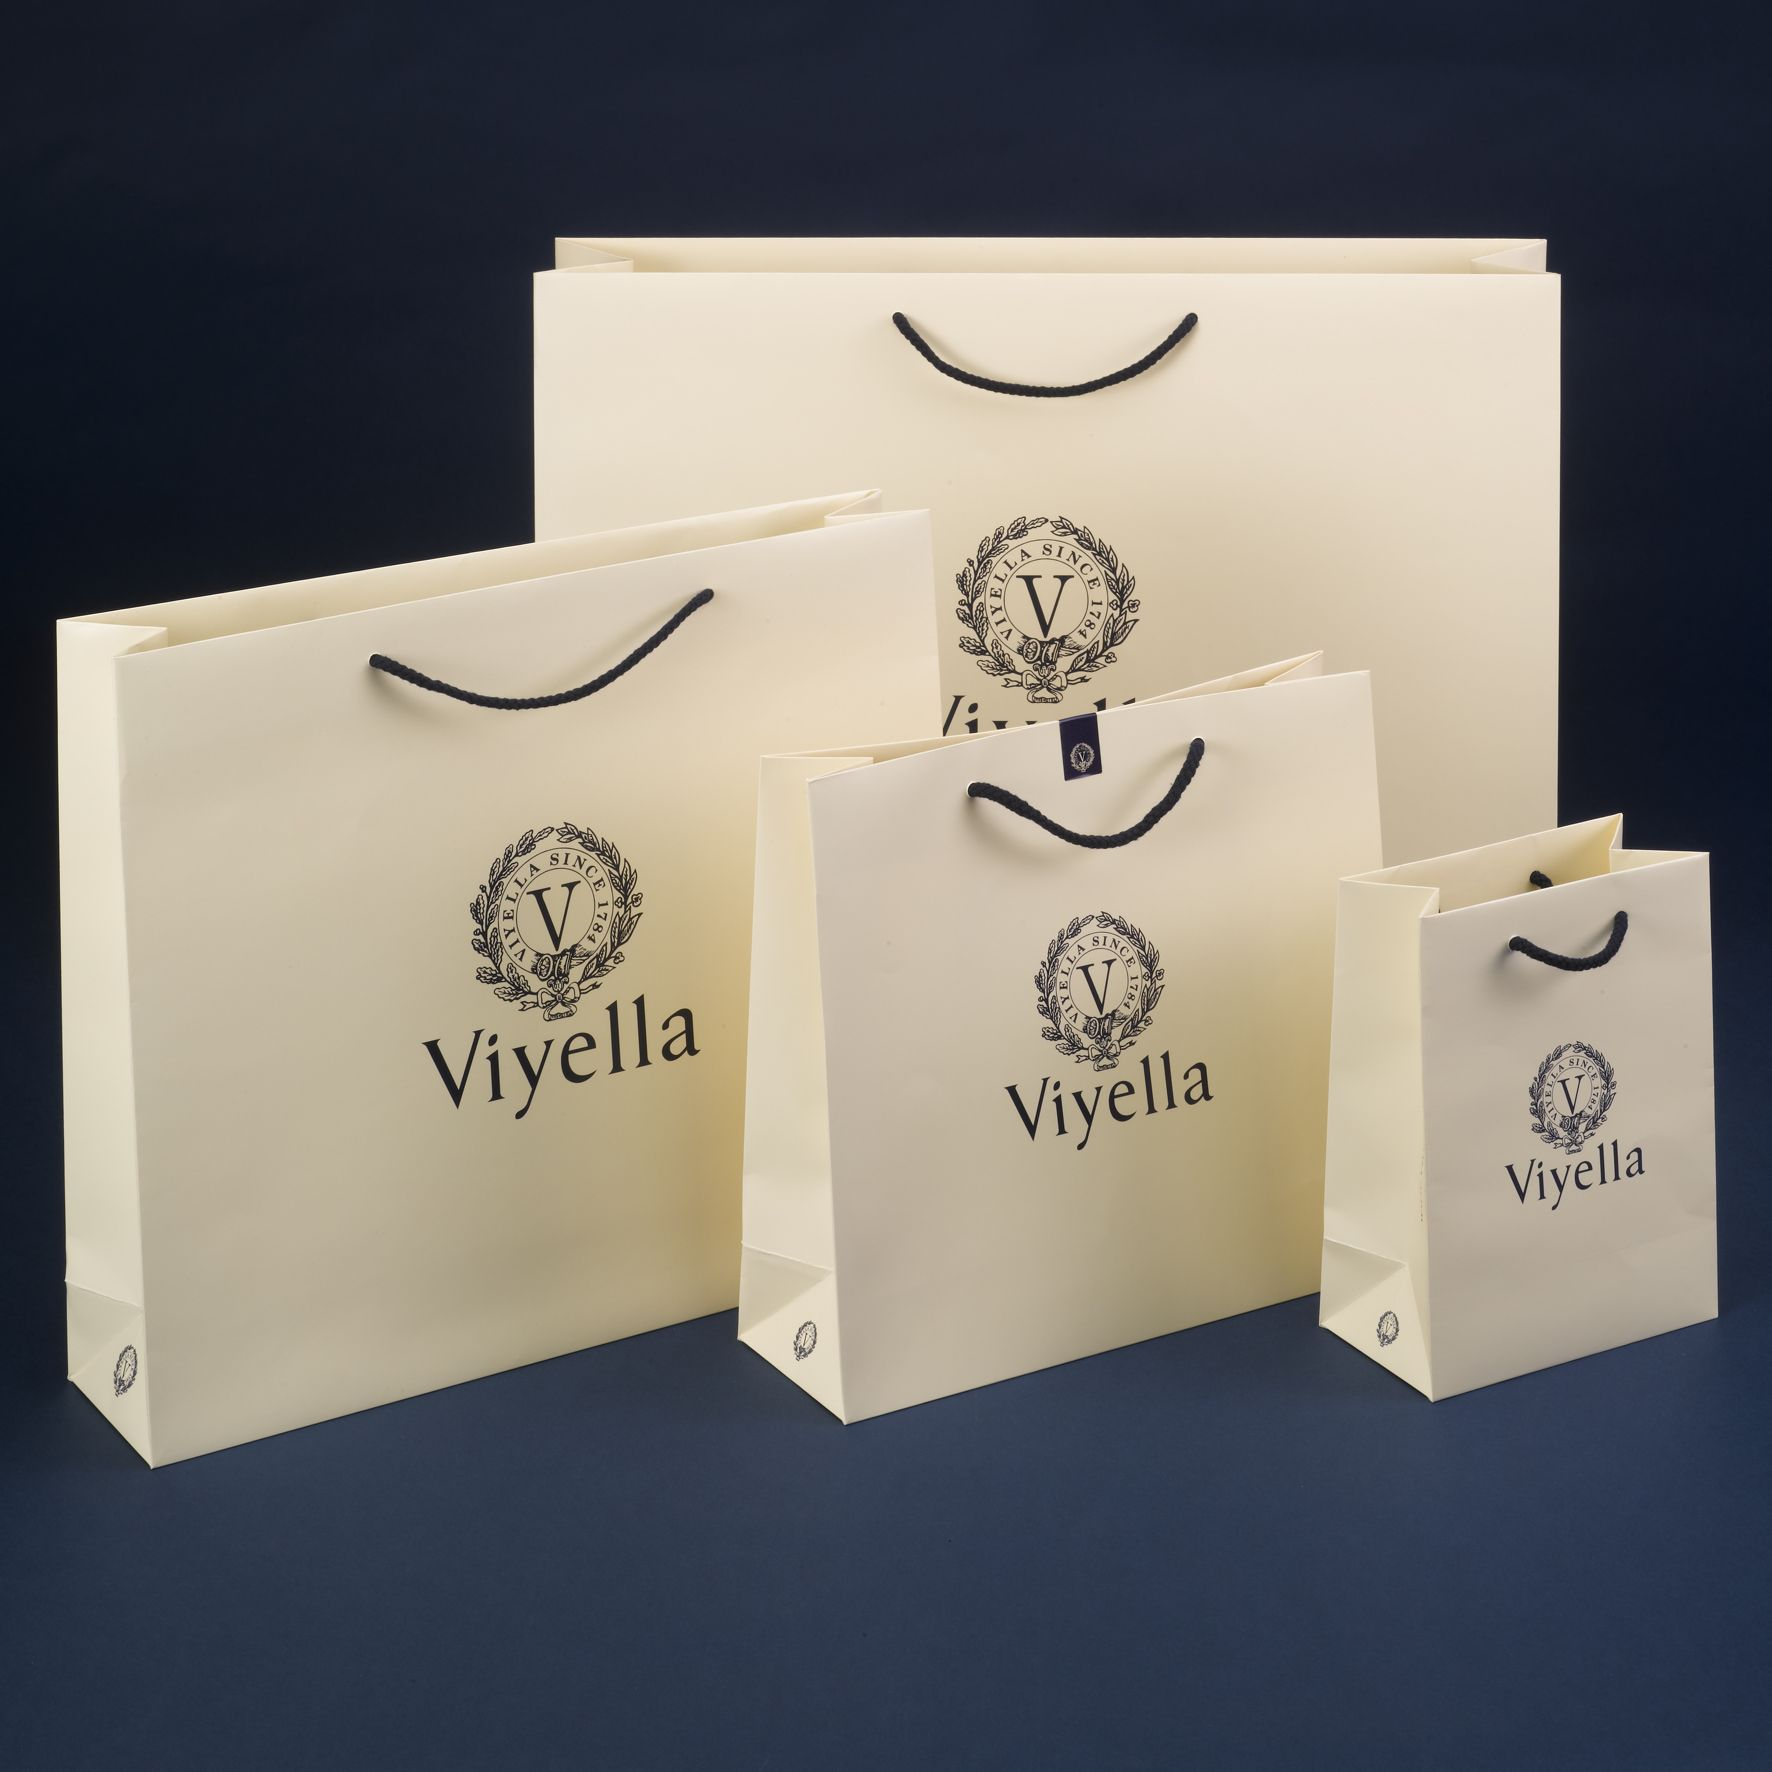 Viyella Luxury Carrier bags. Created for Viyella, part of ...